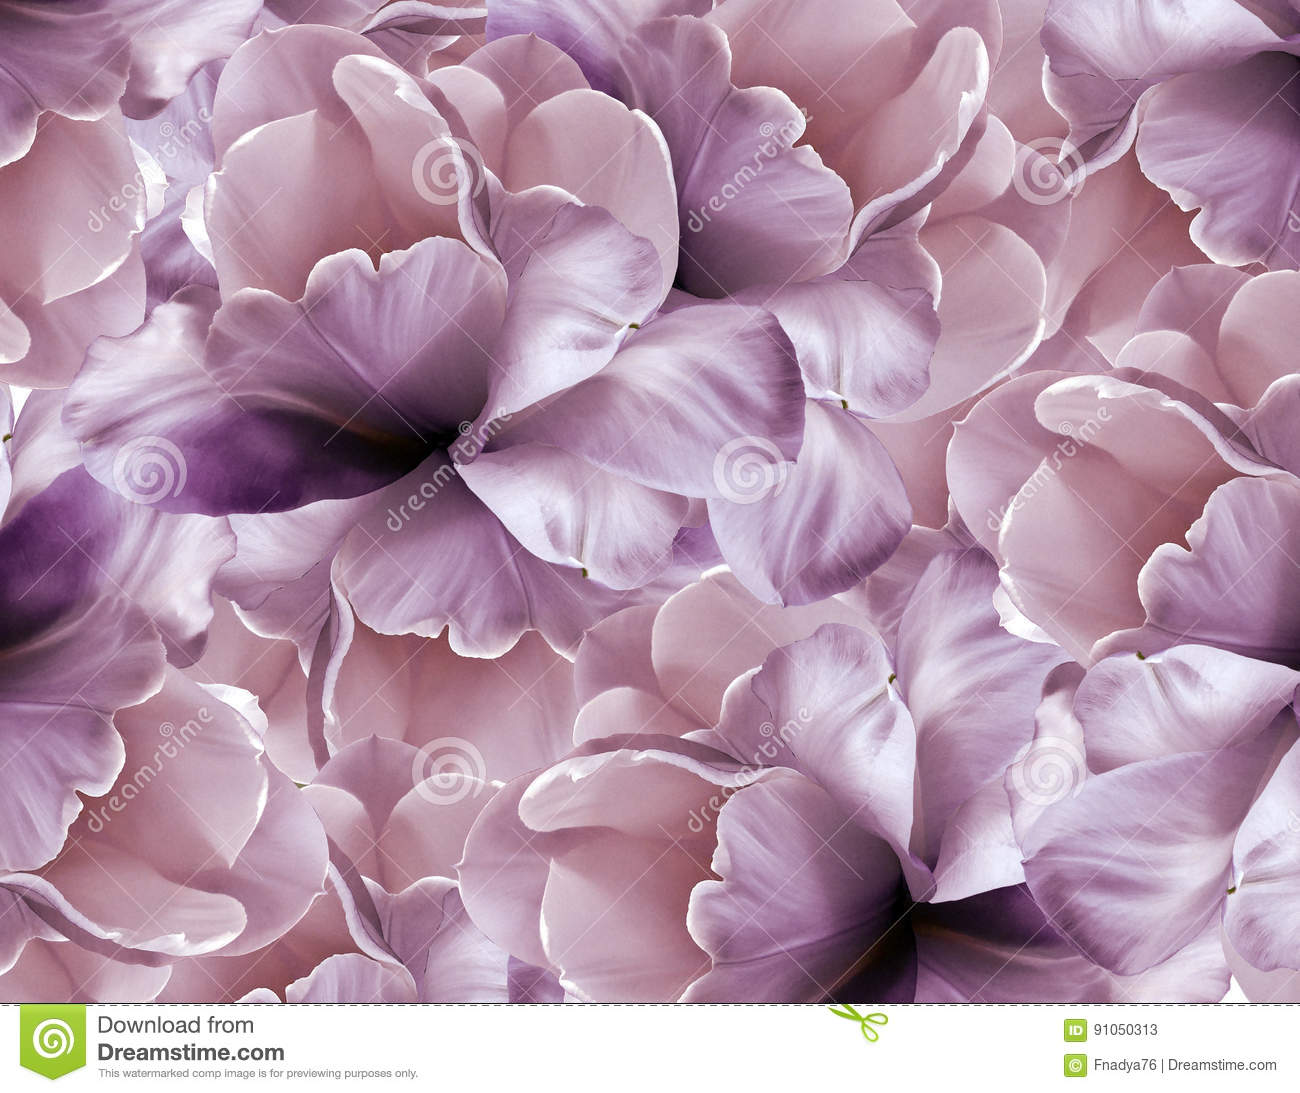 Flowers pink-violet background . Purple-white large petals flowers tulip. floral collage. Flower composition.